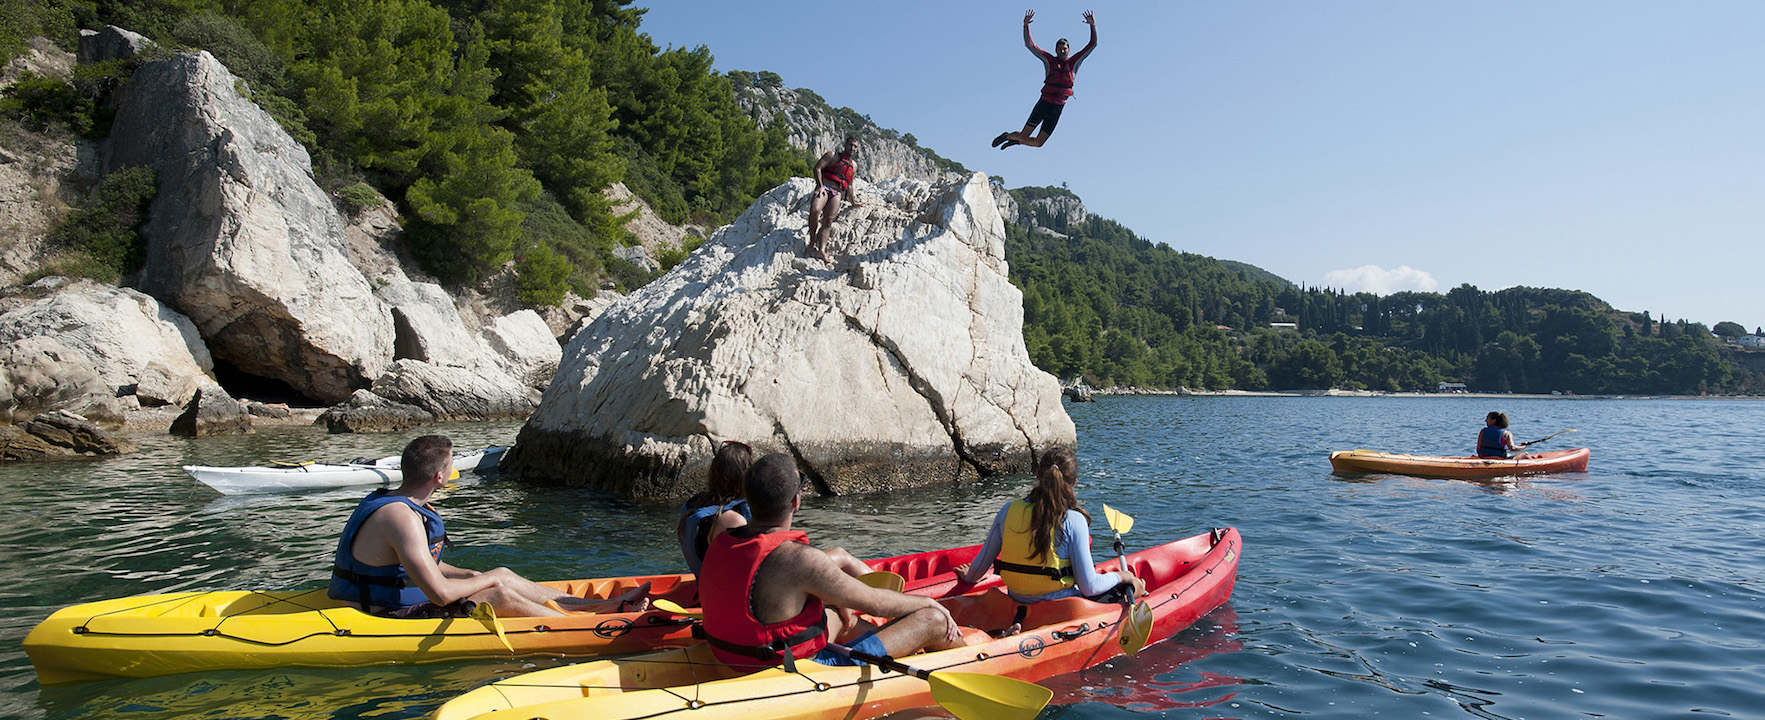 3 Days Dalmatia Weekend Adventure, Cycling, kayaking and rafting, best weekend gataway. SEPTEMBER Low Season